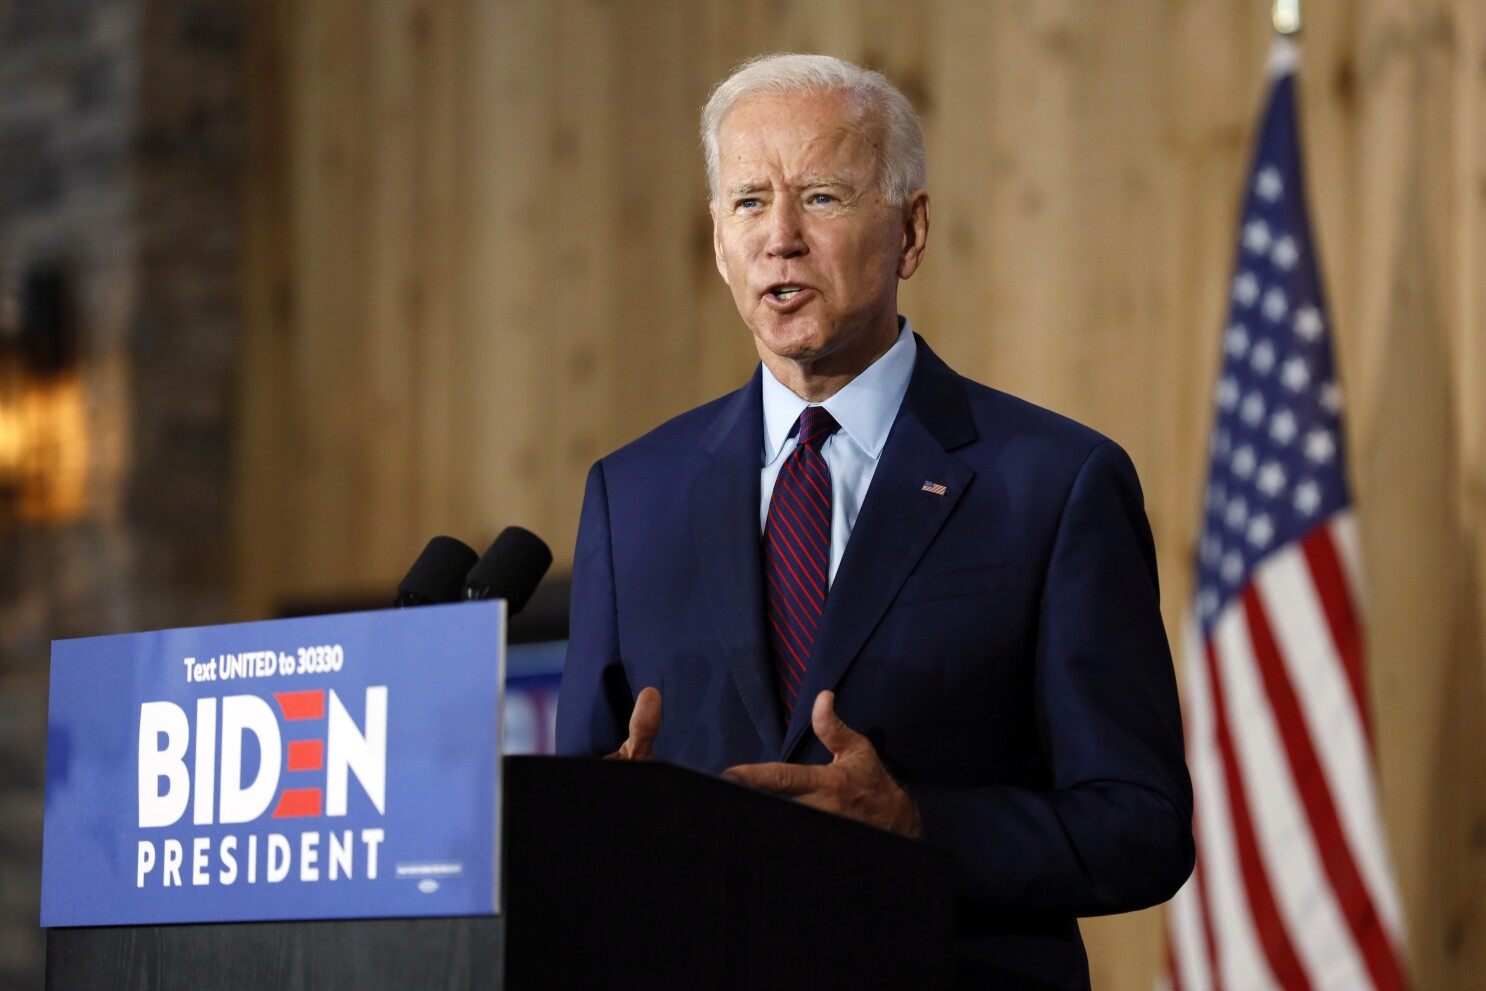 Biden Says Trump S Language Enables White Supremacists Los Angeles Times